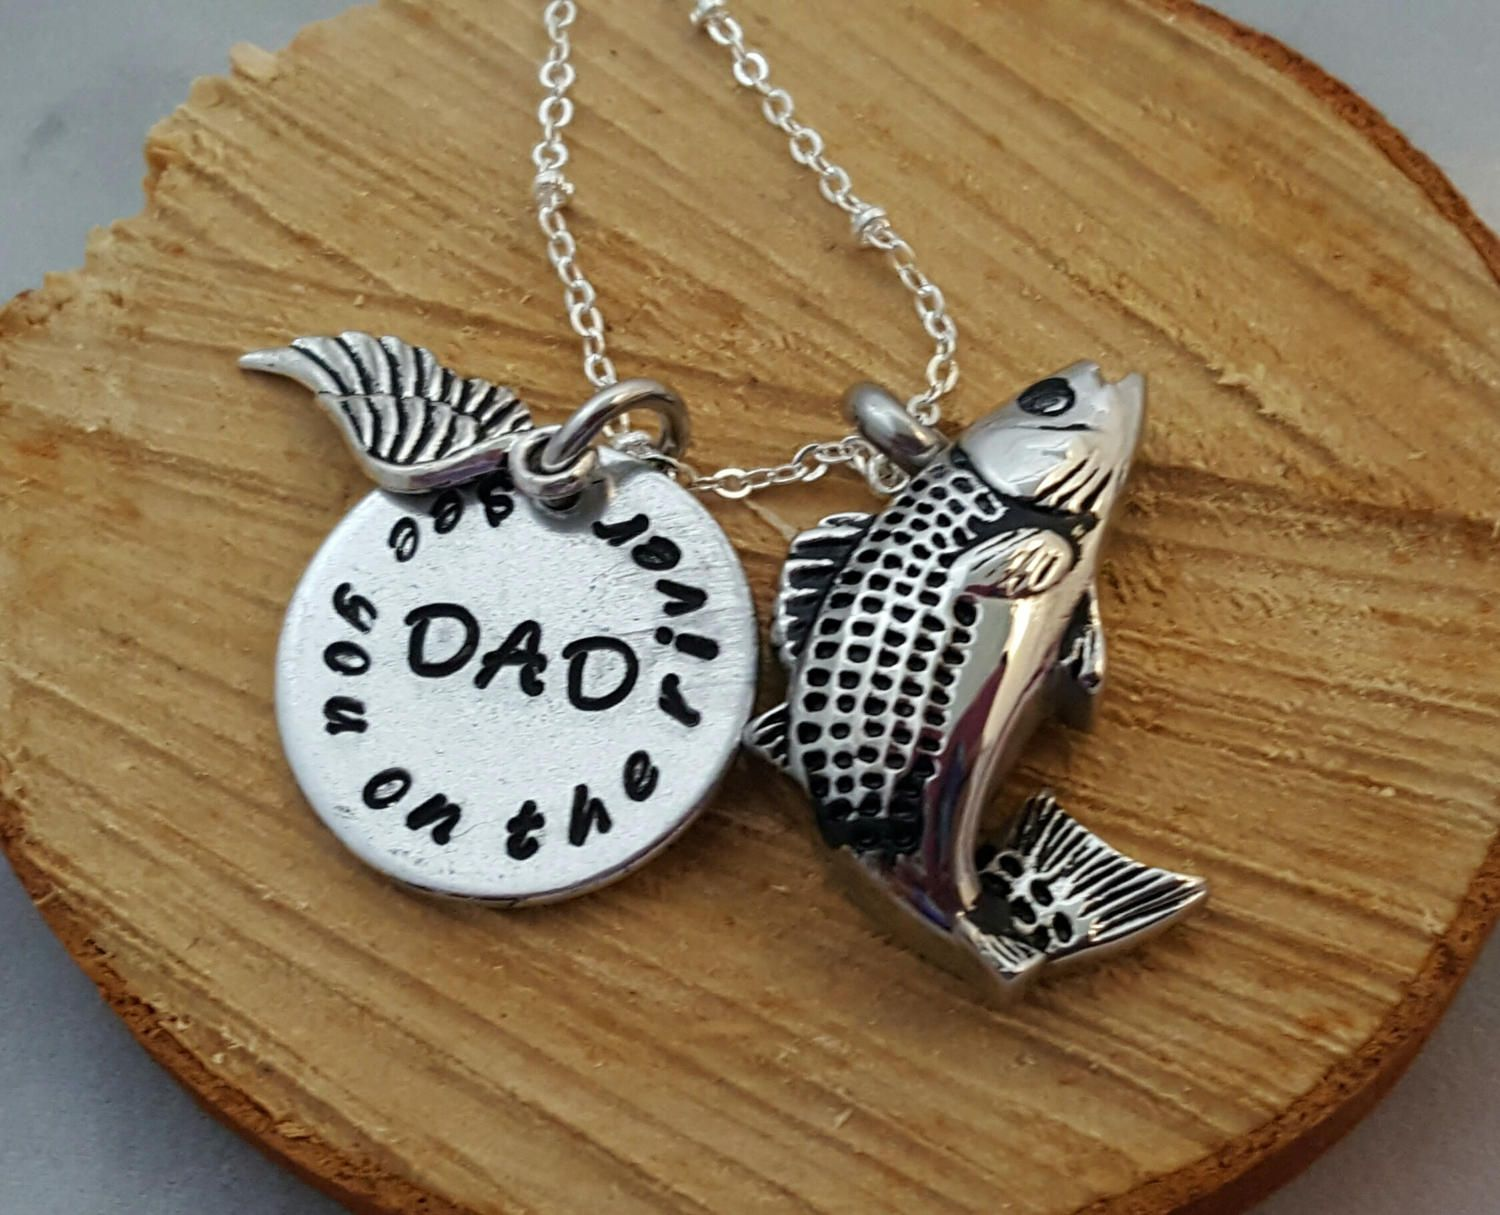 Fishing in heaven fish cremation urn necklace cremation for Fish cremation jewelry